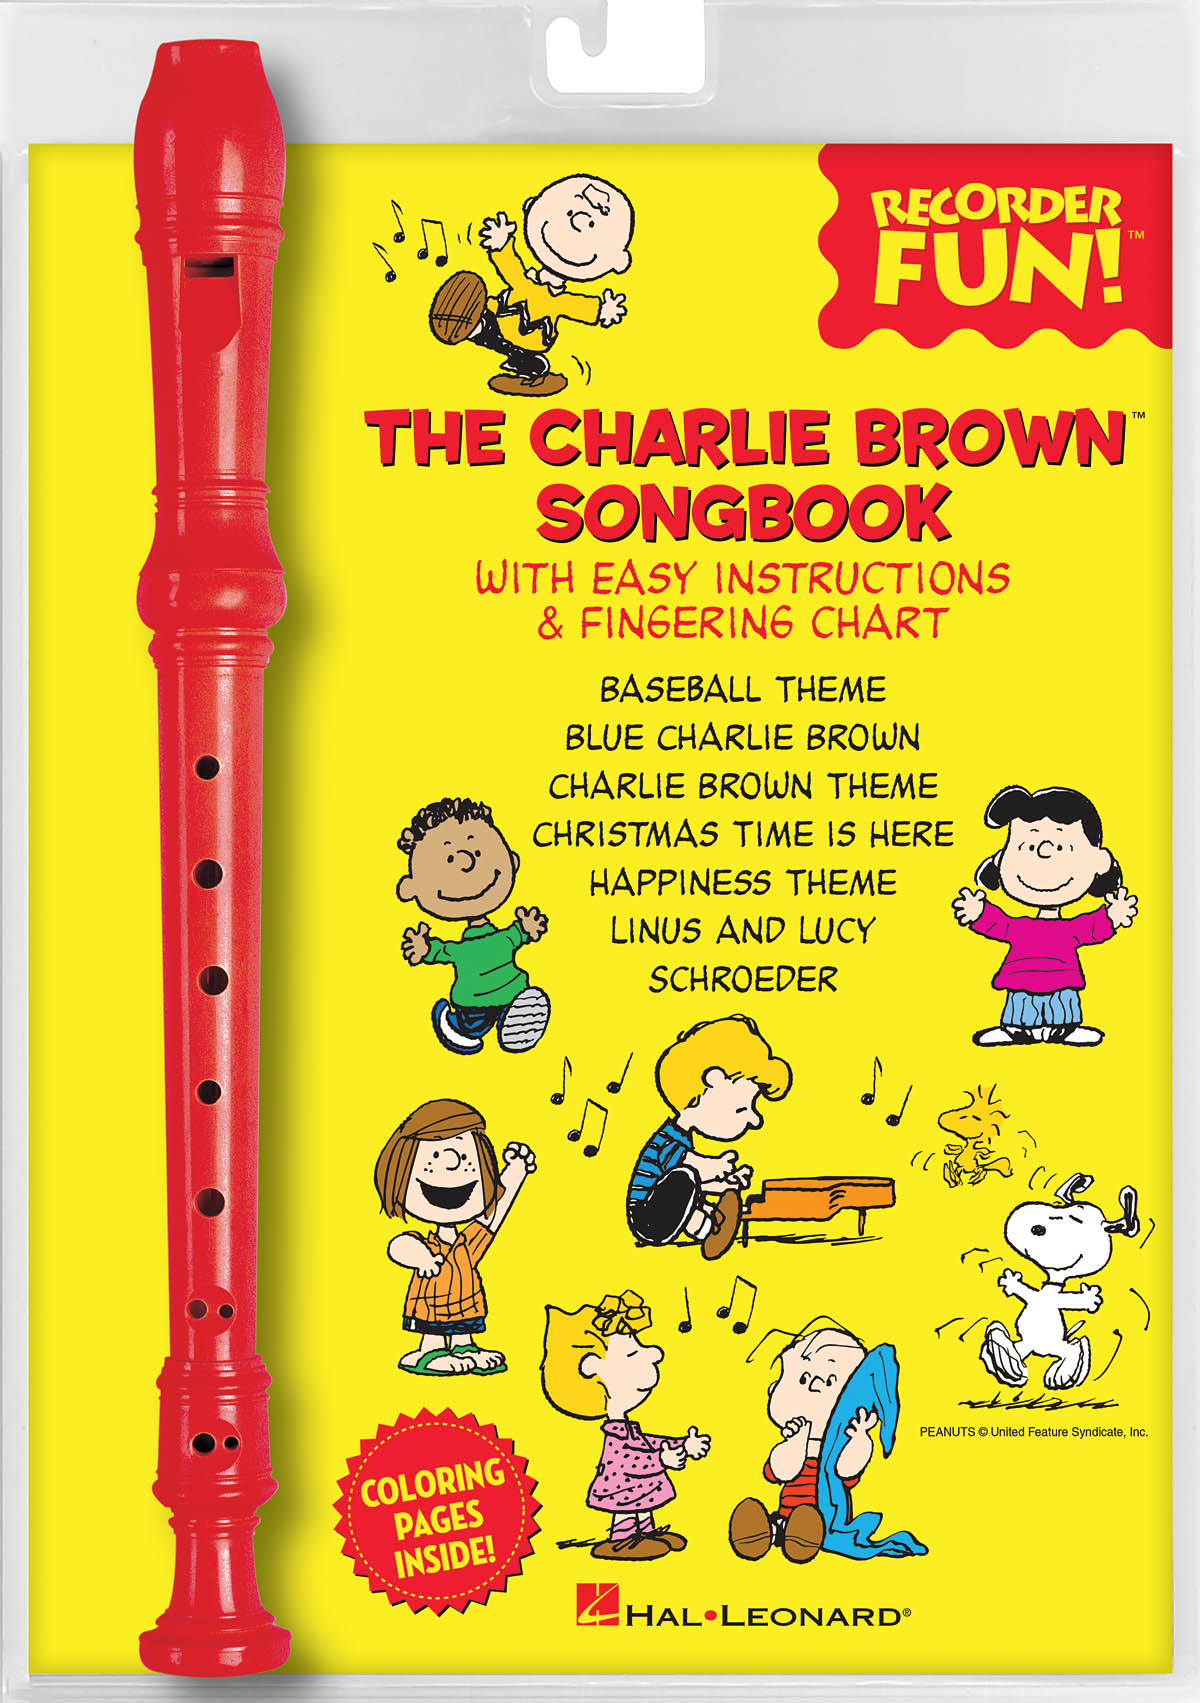 The Charlie Brown(TM) Songbook - Recorder Fun!: Recorder: Instrument Pack